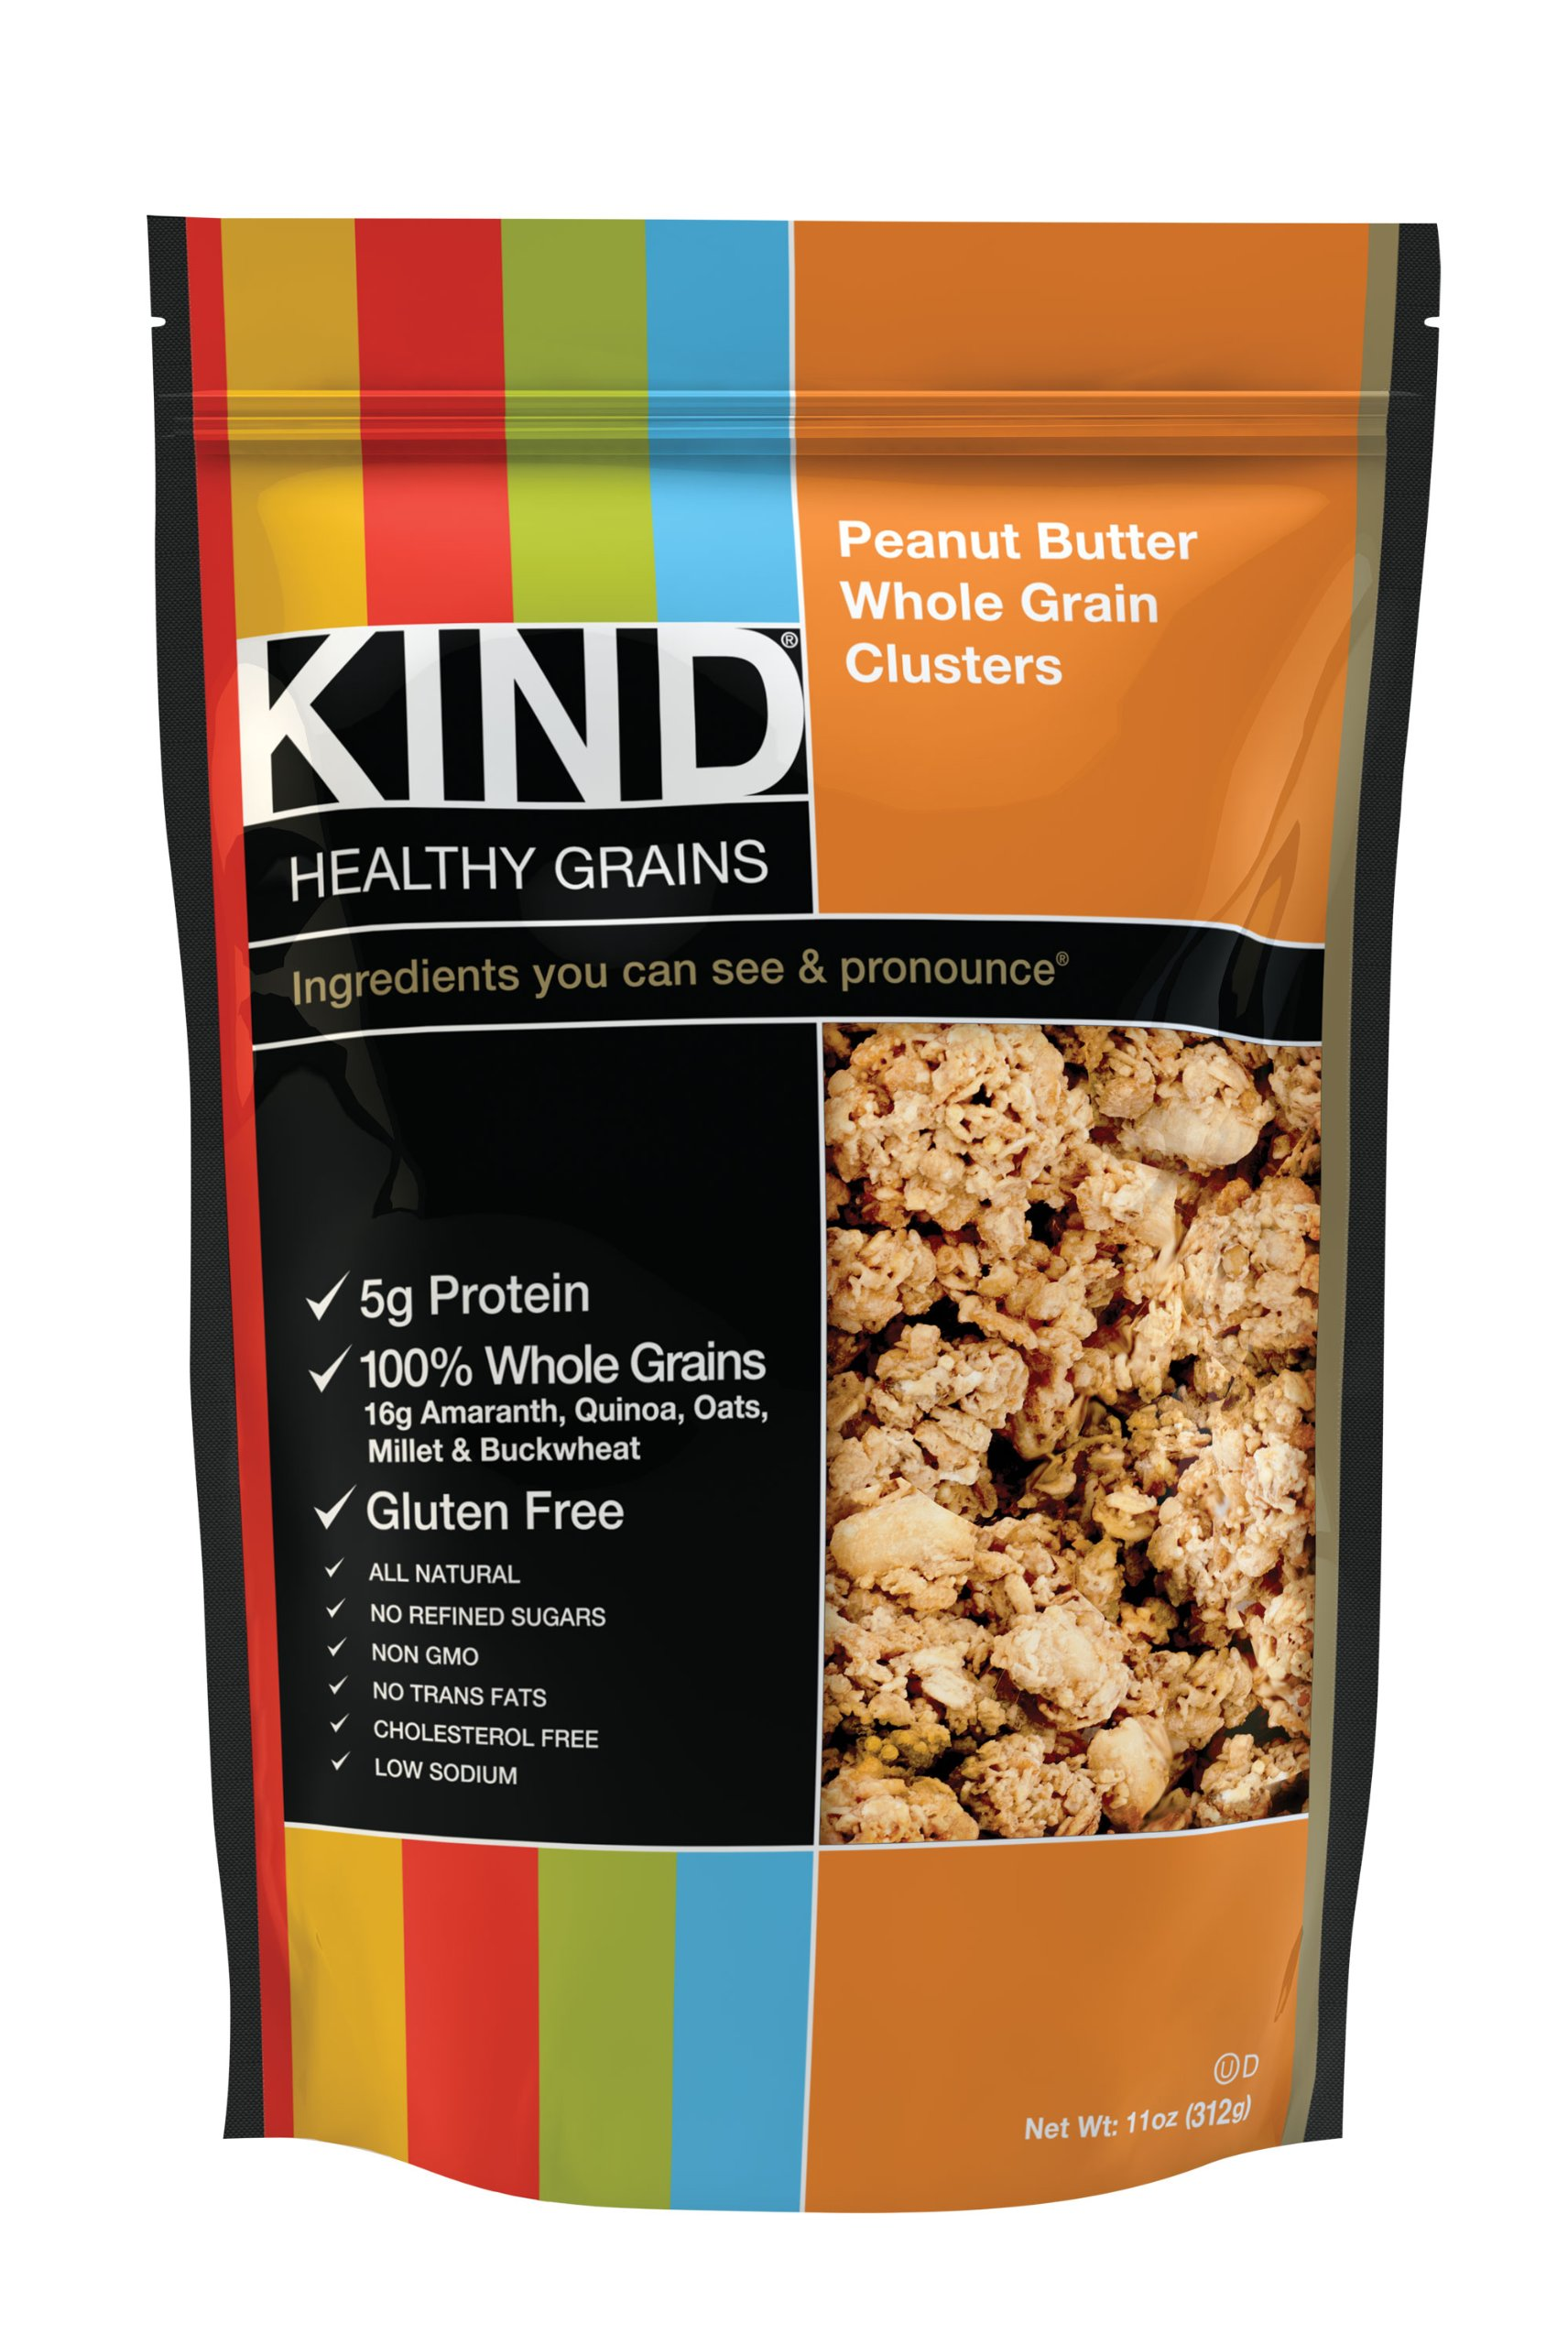 KIND Healthy Grains Clusters, Peanut Butter Whole Grain Granola, 10g Protein, Gluten Free, Non GMO, 11 Ounce Bags, 3 Count by KIND